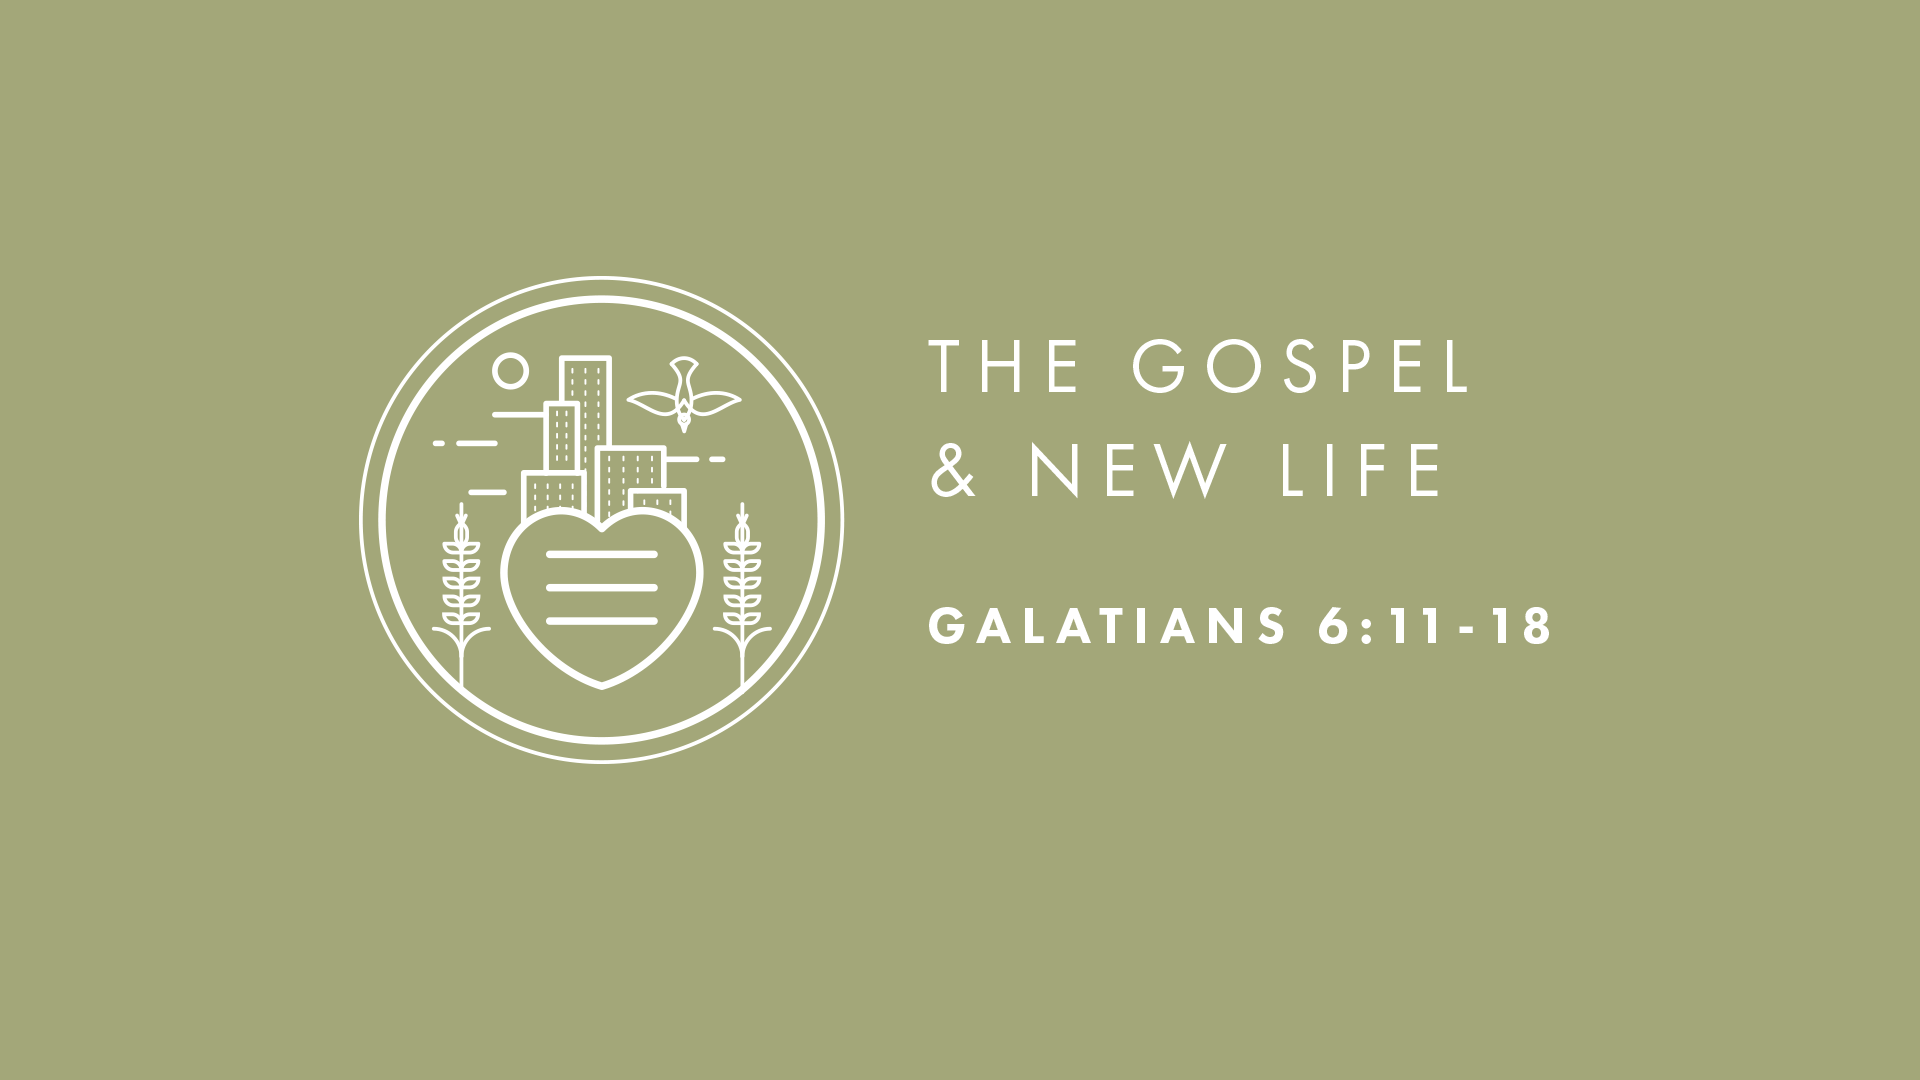 The Gospel and New Life